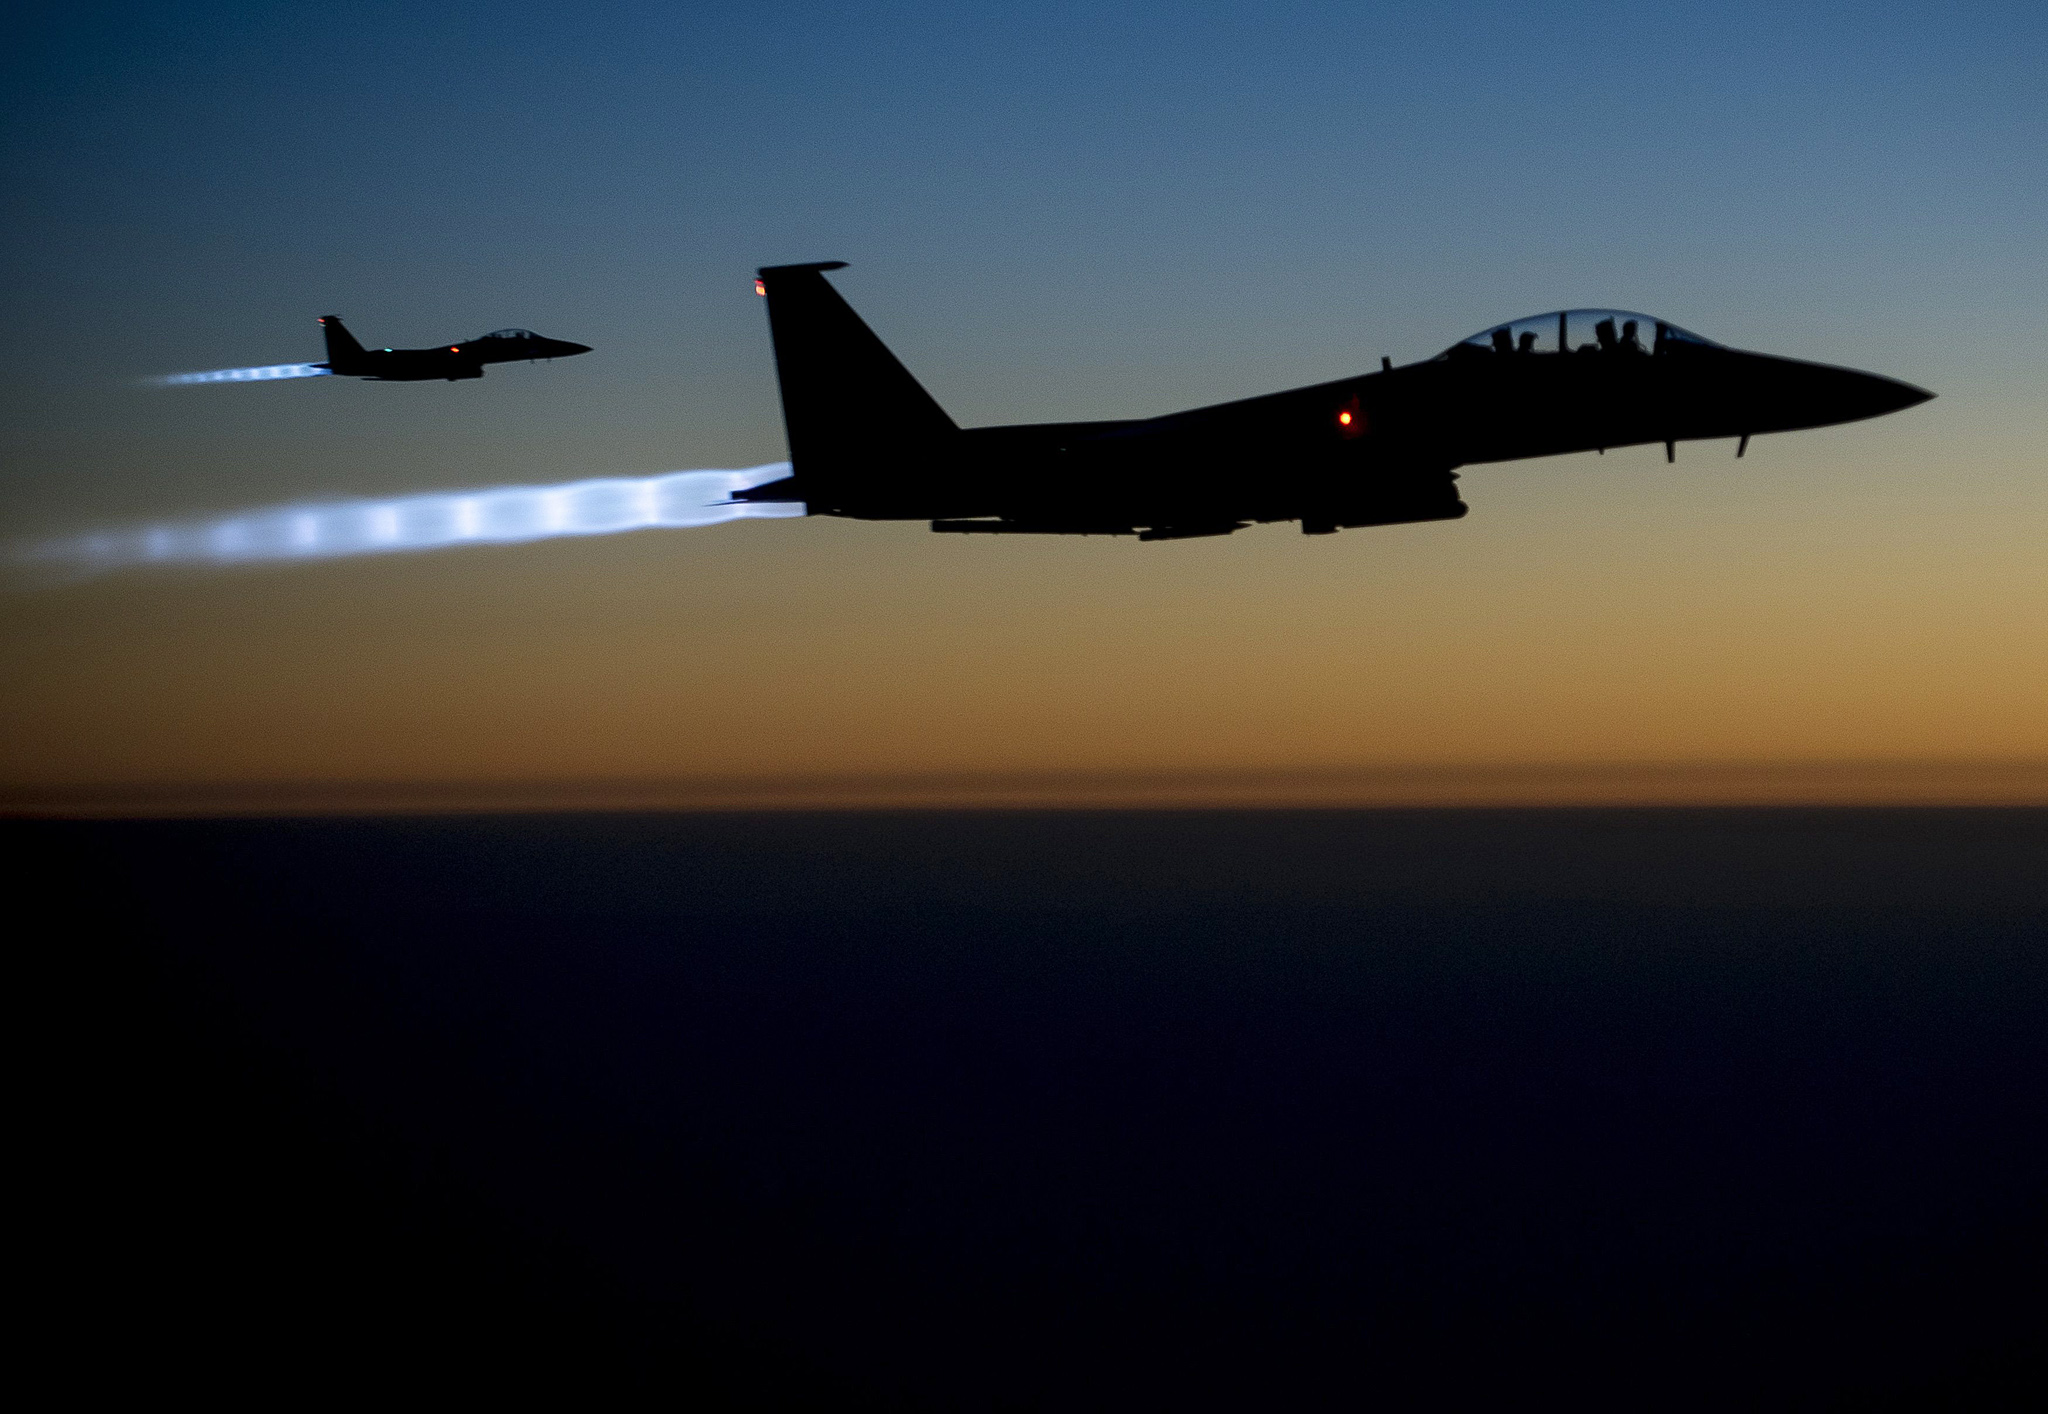 A pair of U.S. Air Force F-15E Strike Eagles fly over northern Iraq...A pair of U.S. Air Force F-15E Strike Eagles fly over northern Iraq after conducting airstrikes in Syria, in this U.S. Air Force handout photo taken early in the morning of September 23, 2014. These aircraft were part of a large coalition strike package that was the first to strike ISIL targets in Syria. At least 14 Islamic State fighters were killed in air strikes by U.S.-led forces overnight in northeast Syria, a group monitoring the war said on September 25, 2014, and the Syrian air force bombed rebel areas in the west of the country. REUTERS/U.S. Air Force/Senior Airman Matthew Bruch/Handout  (IRAQ - Tags: POLITICS CONFLICT TPX IMAGES OF THE DAY) FOR EDITORIAL USE ONLY. NOT FOR SALE FOR MARKETING OR ADVERTISING CAMPAIGNS. THIS IMAGE HAS BEEN SUPPLIED BY A THIRD PARTY. IT IS DISTRIBUTED, EXACTLY AS RECEIVED BY REUTERS, AS A SERVICE TO CLIENTS.